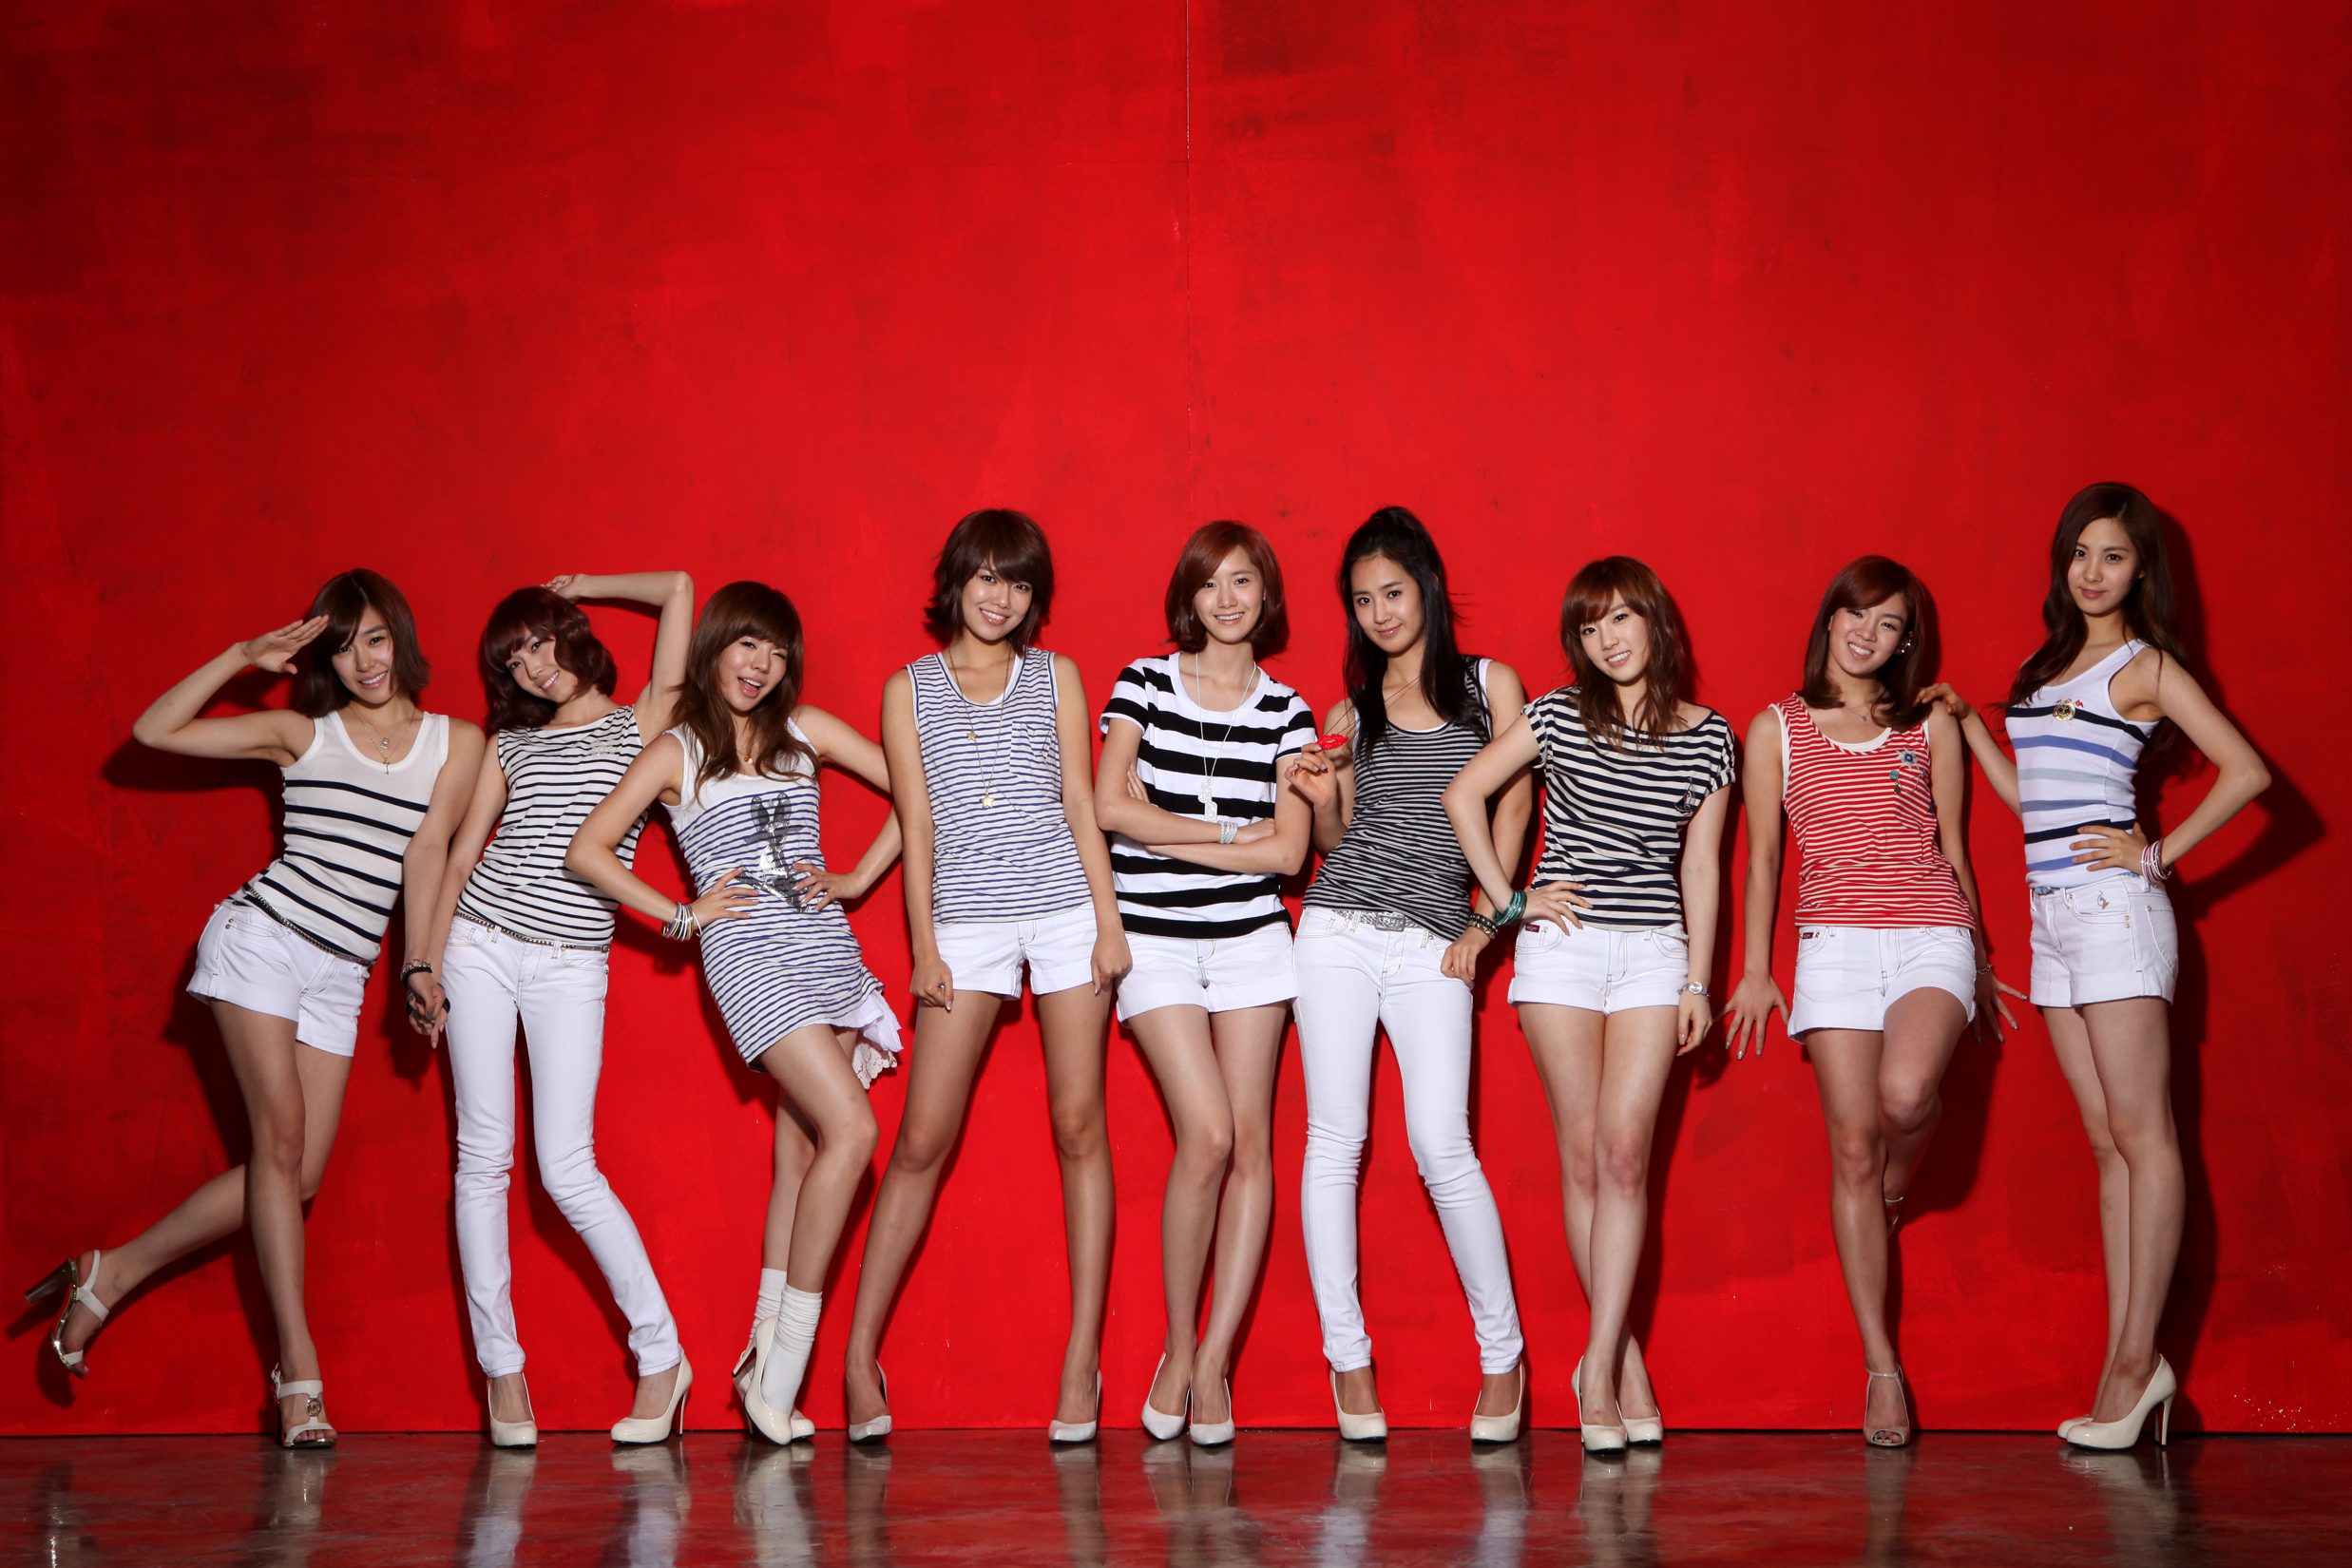 free download SNSD walpapper